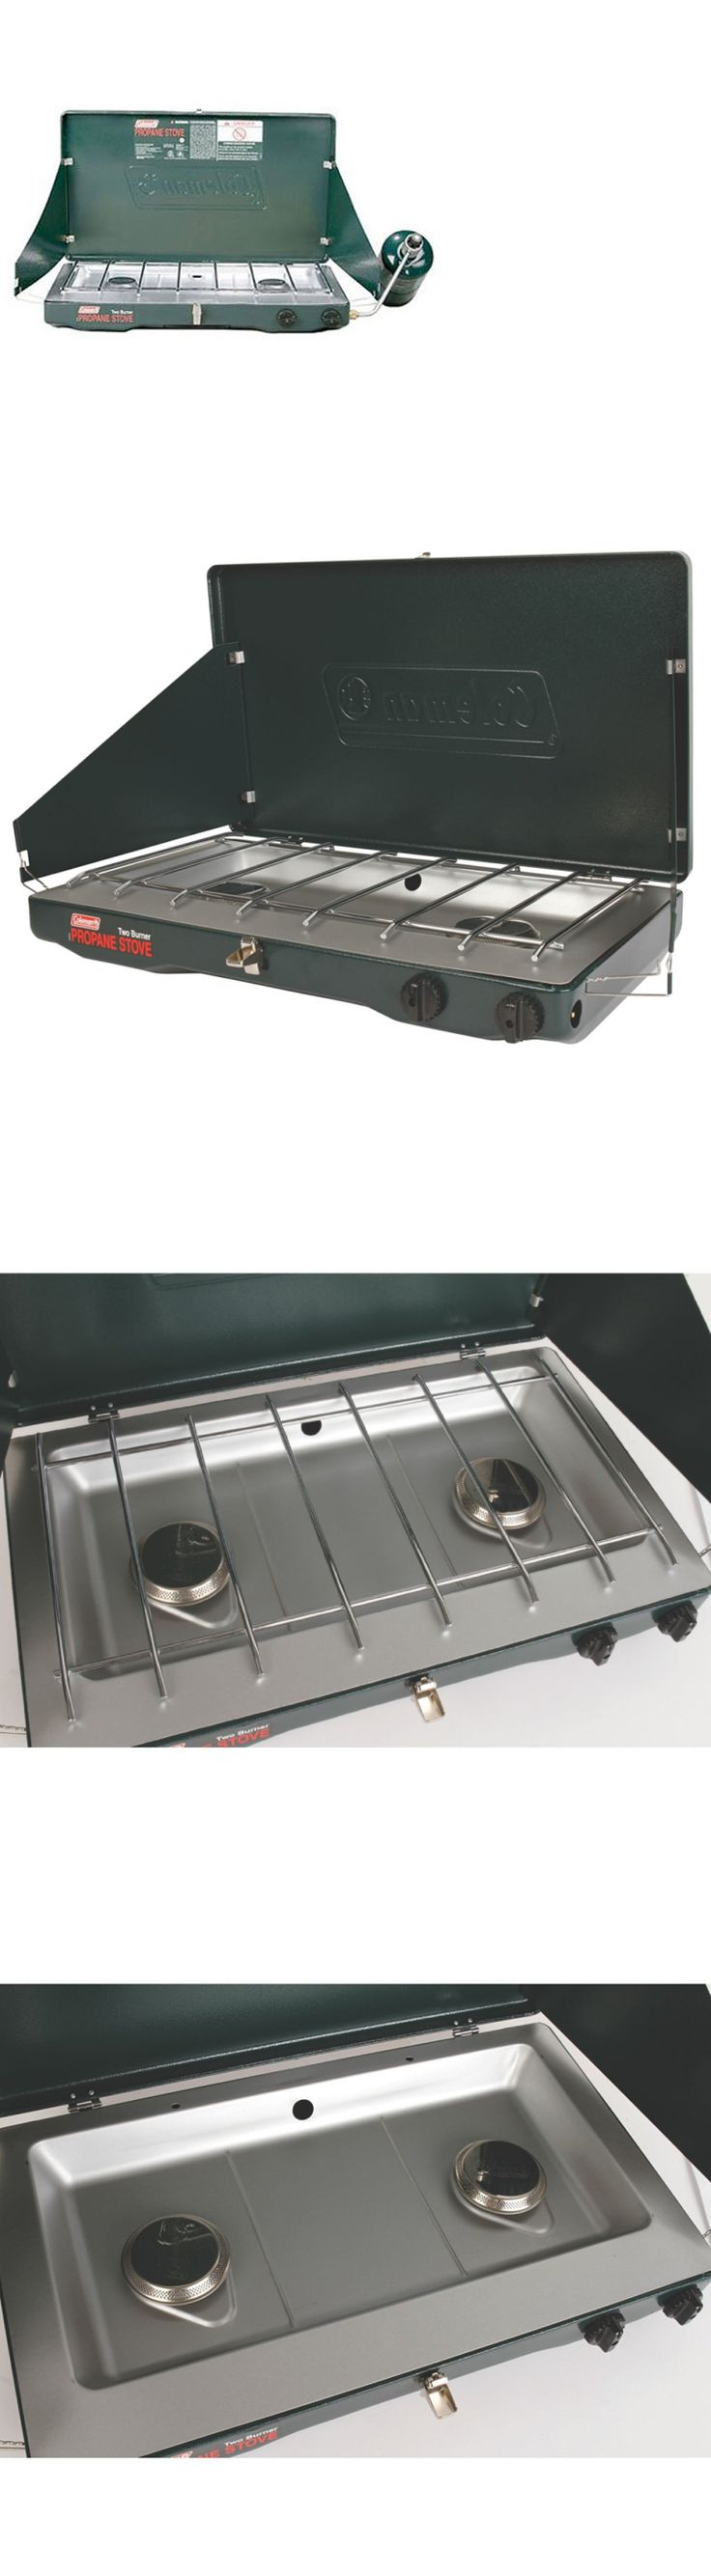 Camping Stoves 181386: 2-Burner Propane Stove Coleman Matchlight 10000 Btu Adjustable Camping Cooking -> BUY IT NOW ONLY: $56.99 on eBay!